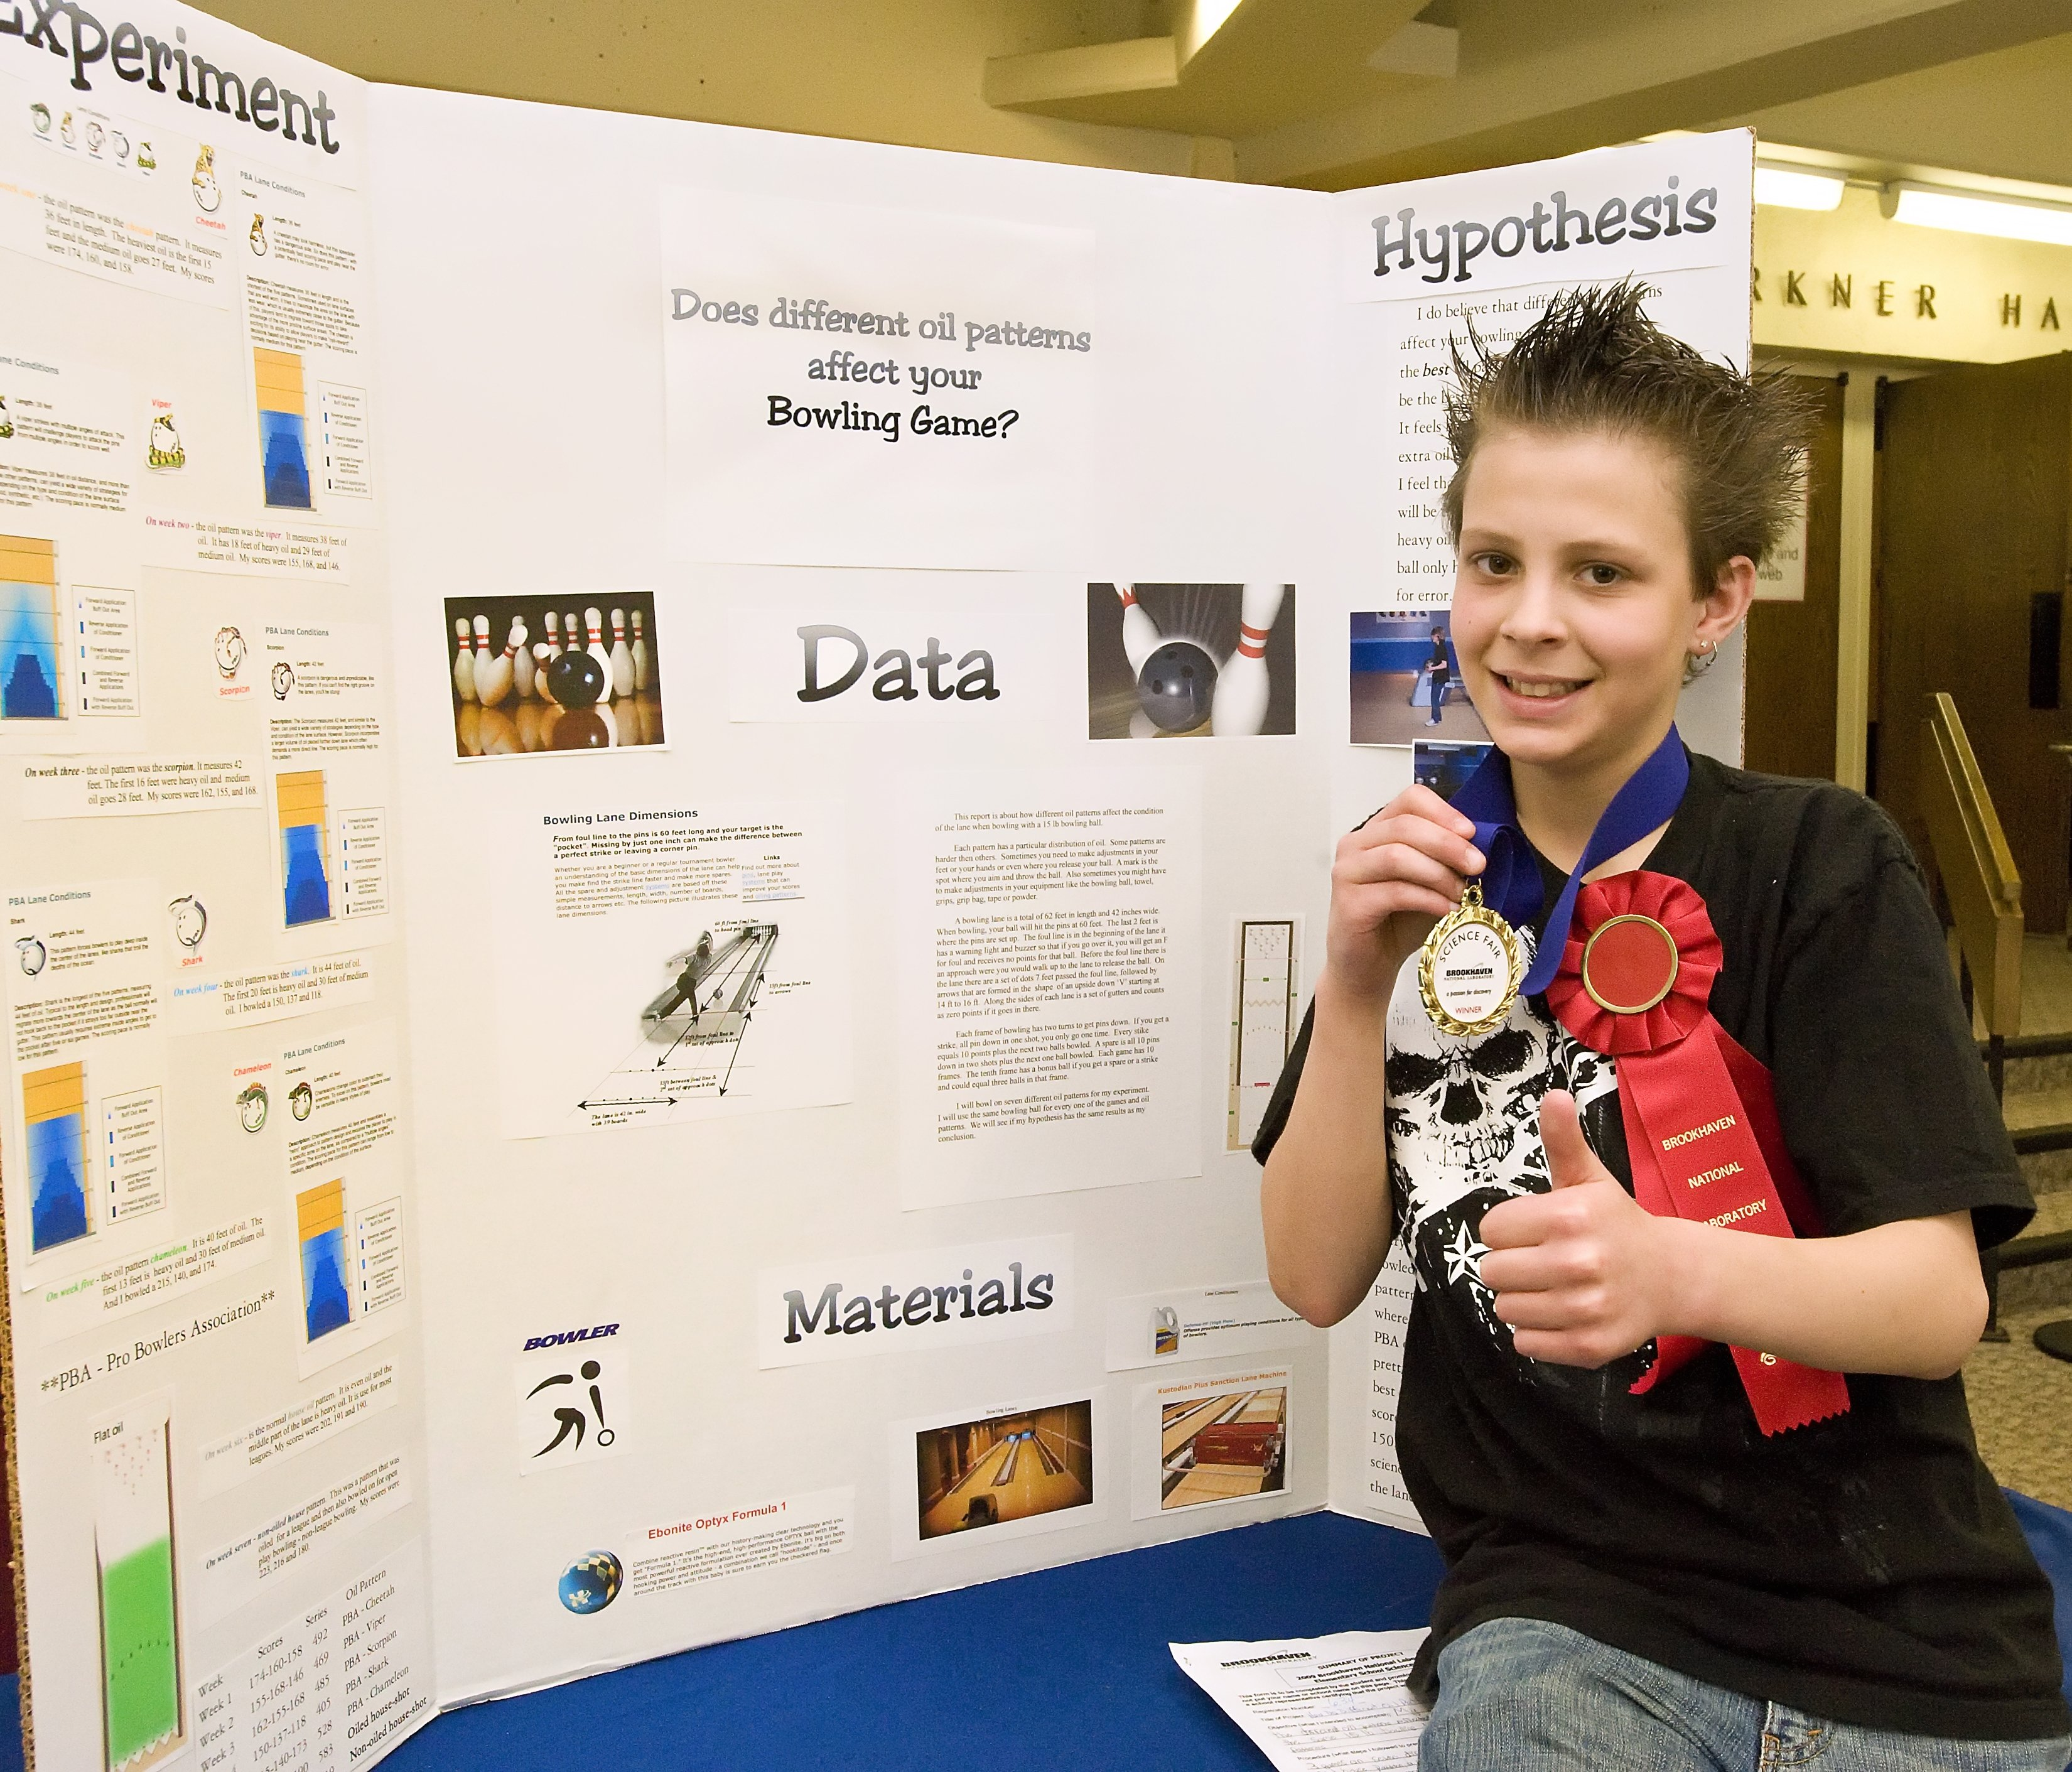 10 Stylish Ideas For 5Th Grade Science Projects www science fair projects custom paper academic writing service 7 2020